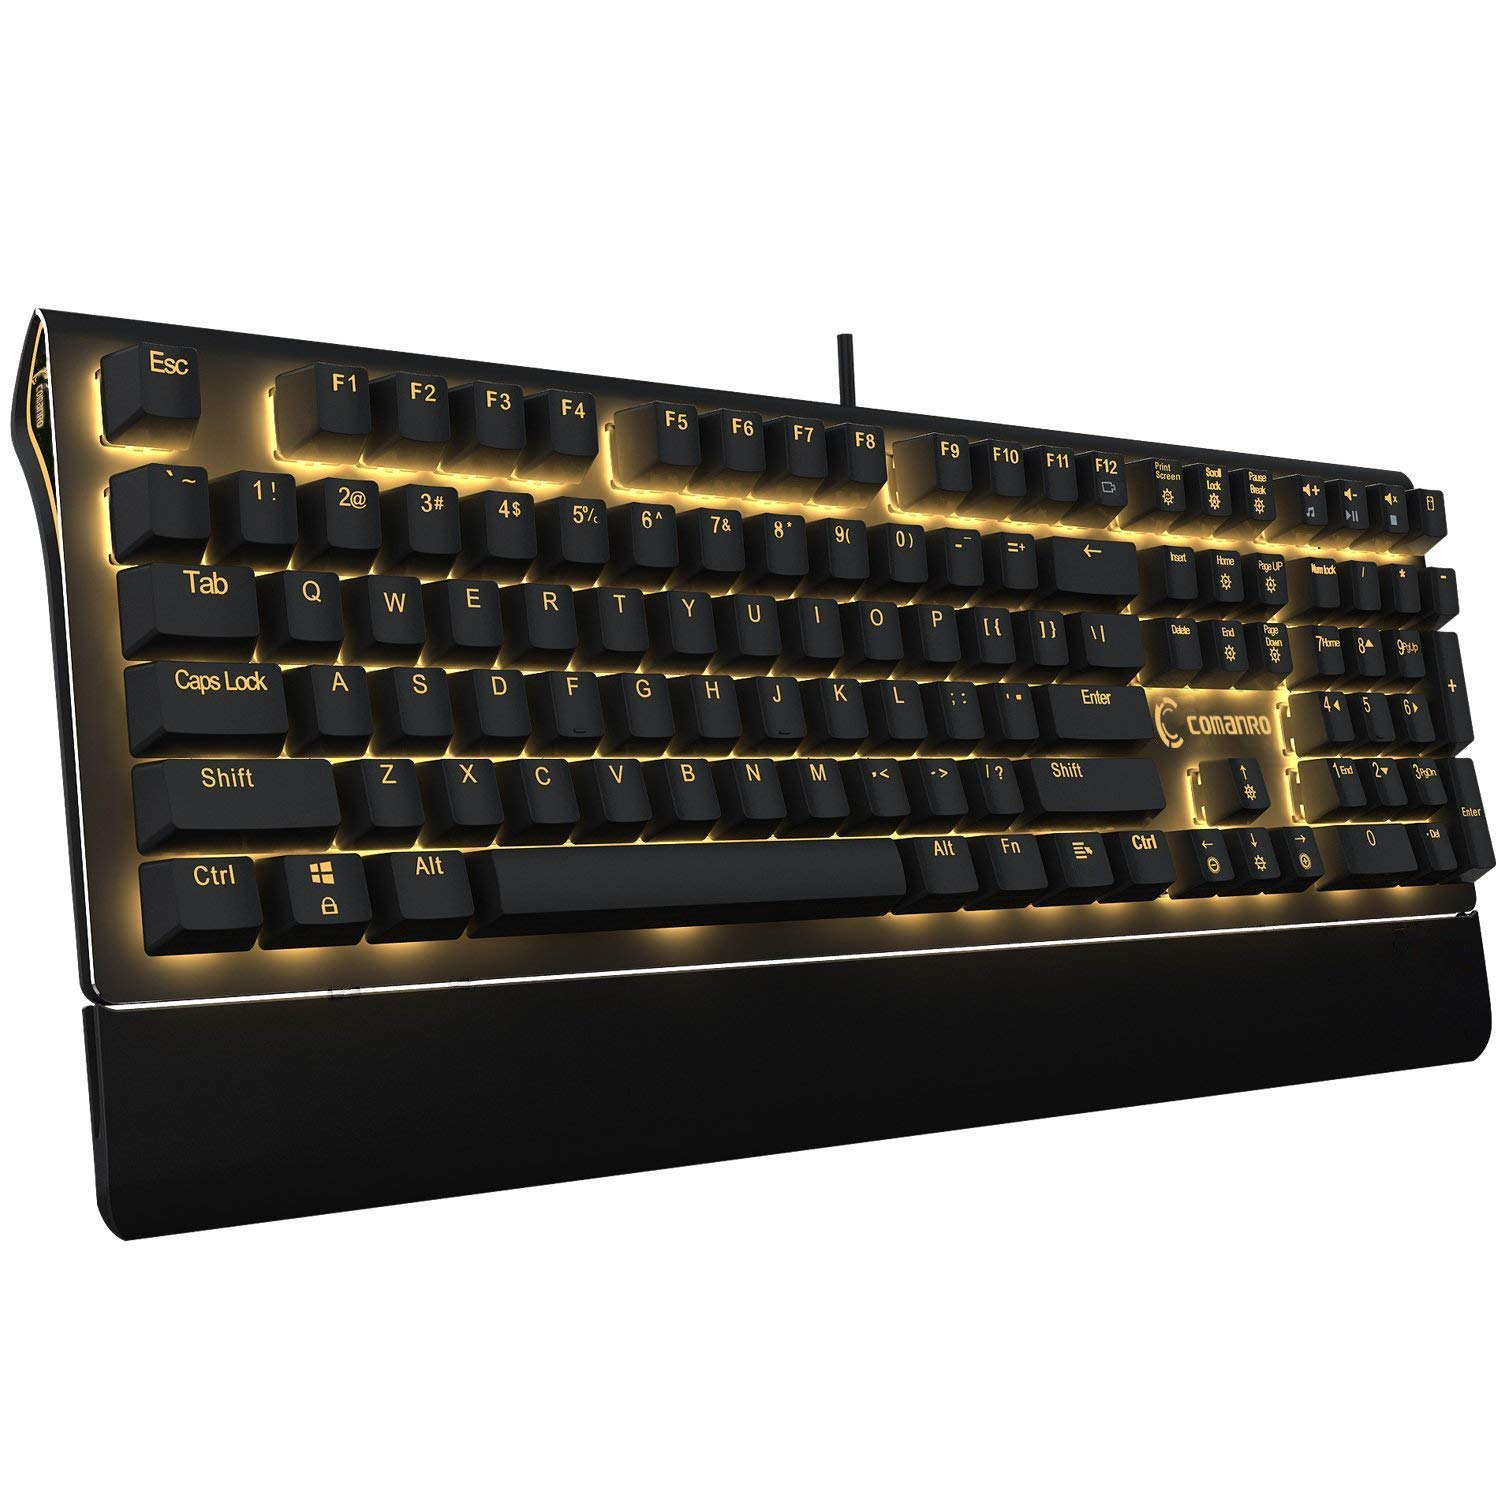 C comanro 108-Key Mechanical Keyboard, LED Golden Backlit with Side Lights, Floating Design with Blue Switch, Anti-ghosting USB Wired Gaming Keyboard - Black